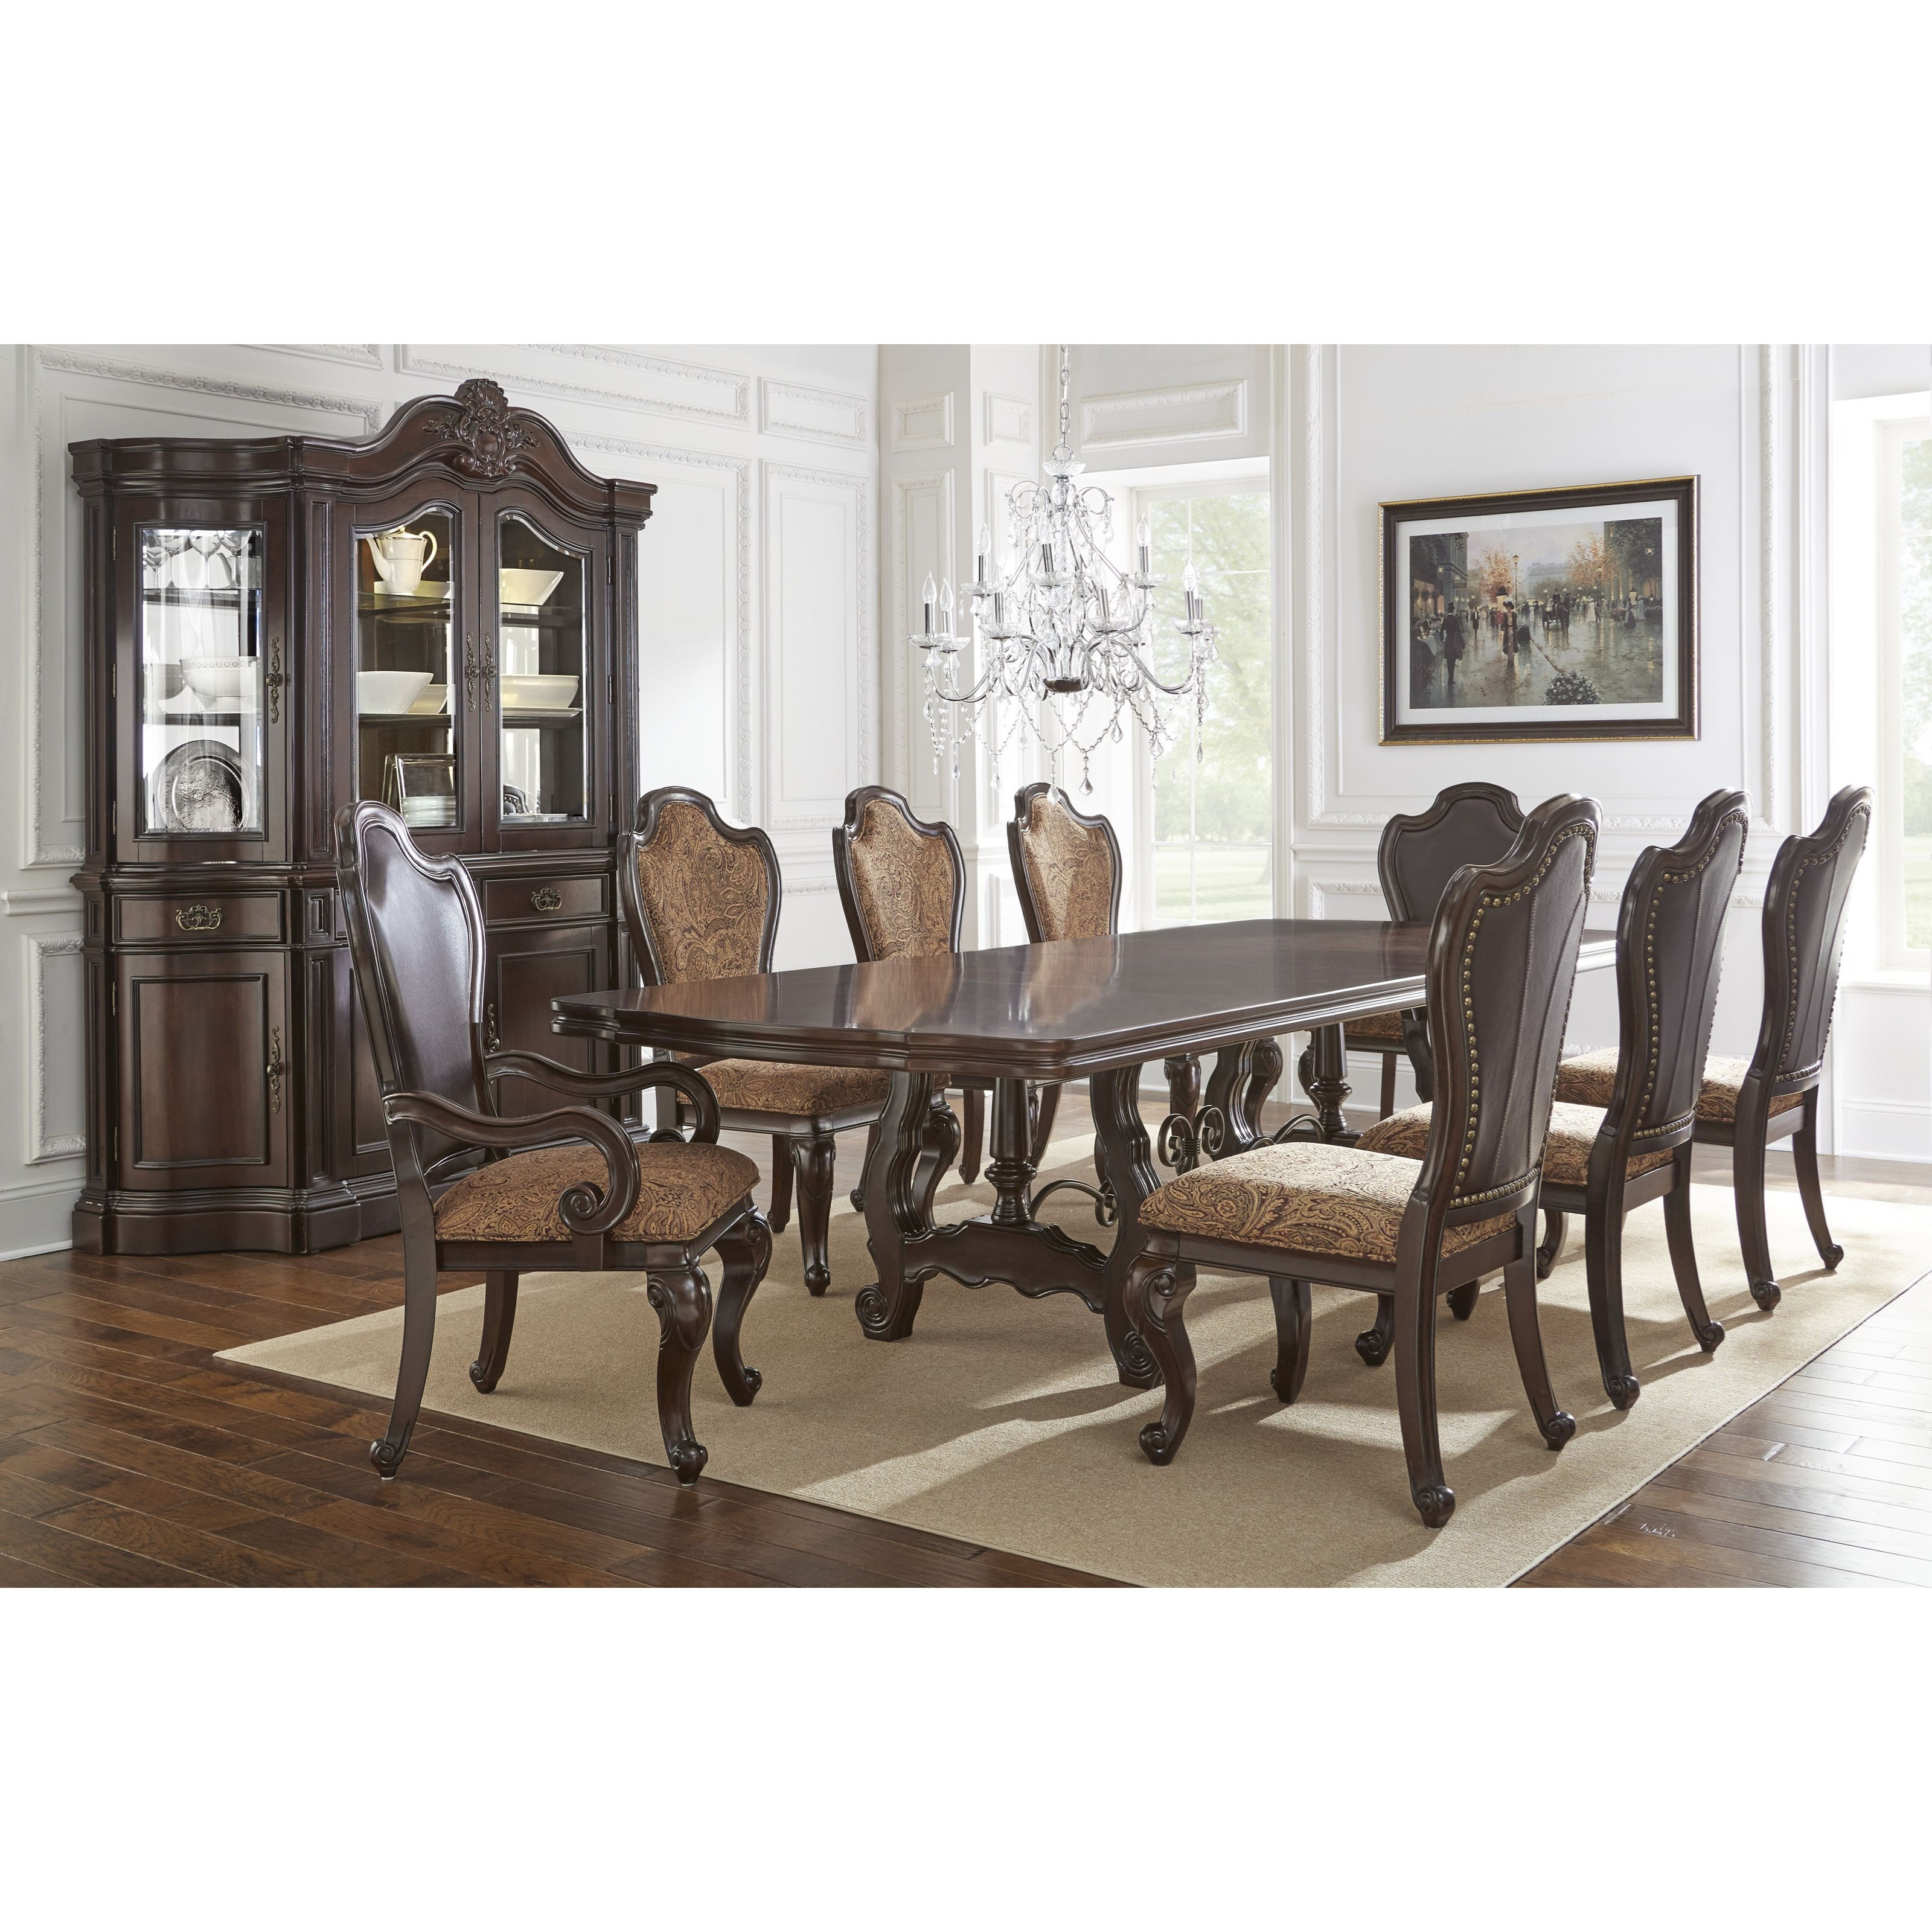 Steve Silver Angelina Double Pedestal Dining Table With